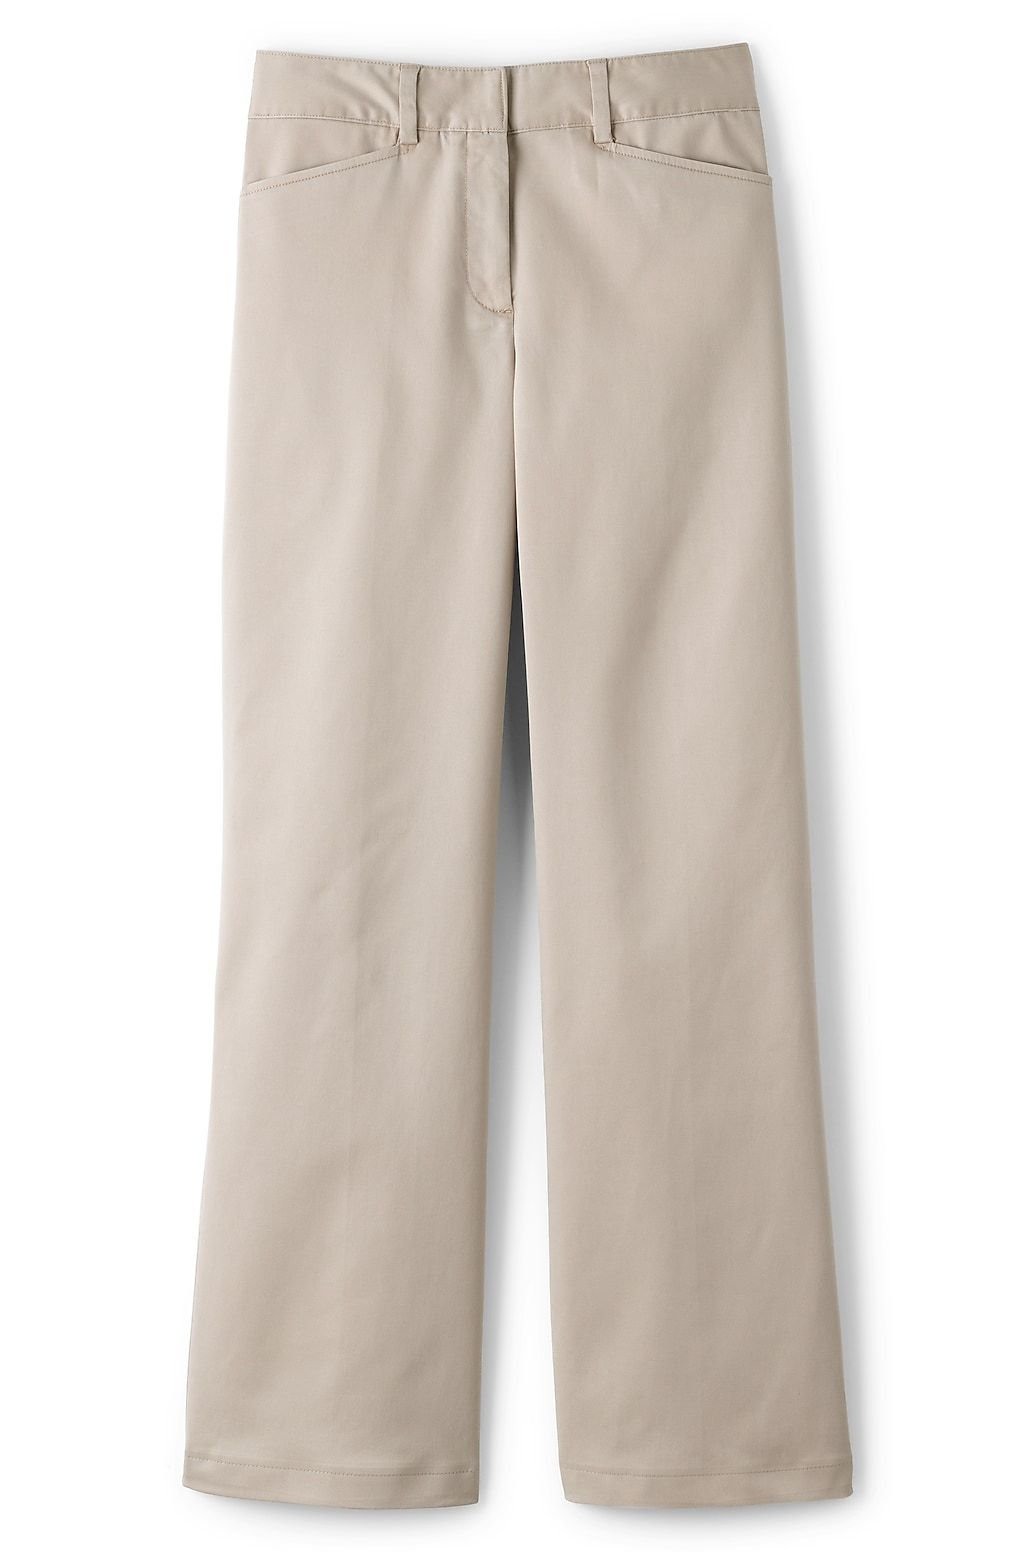 Women's Mid Rise Chino Wide Leg Pants from Lands' End